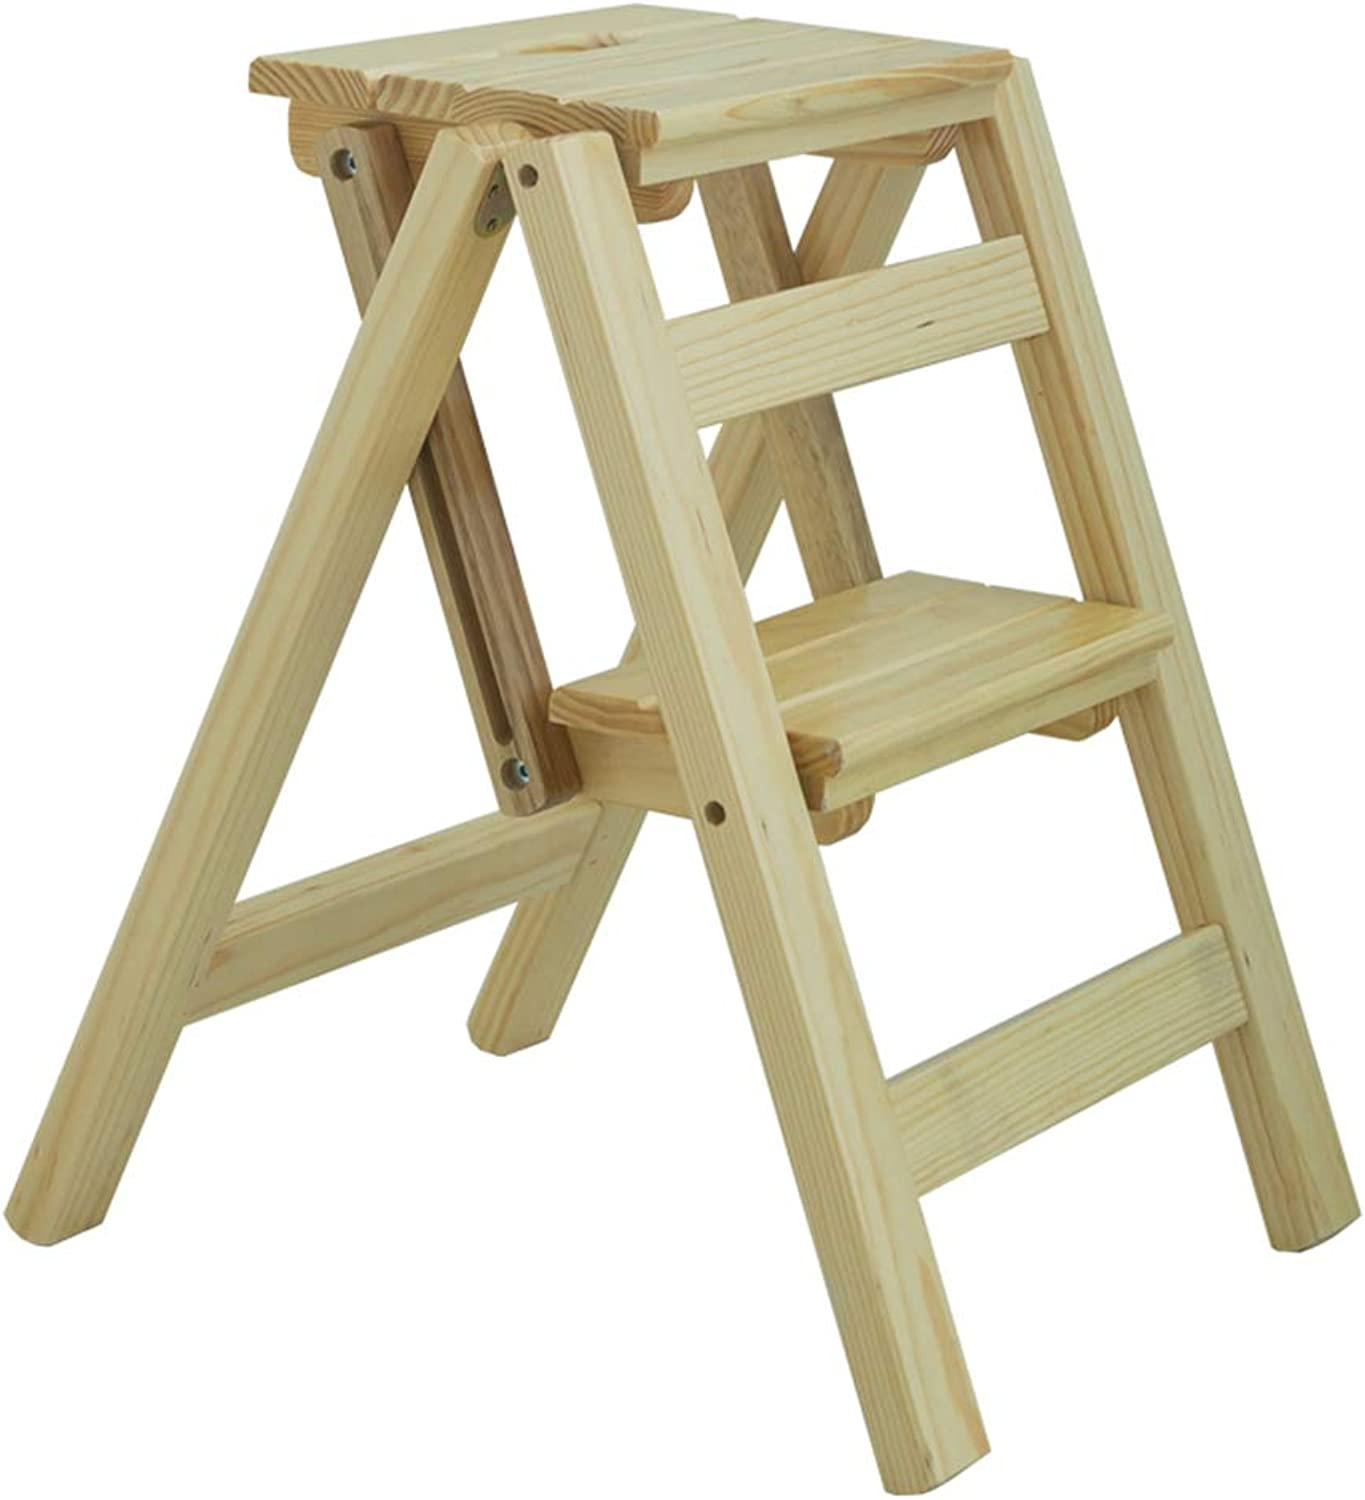 ZENGAI Folding Stool Ladder Household Multifunction Insulation Two Step Ladder Flower Stand Anti-Corrosion, Solid Wood (color   A, Size   38x46x50cm)